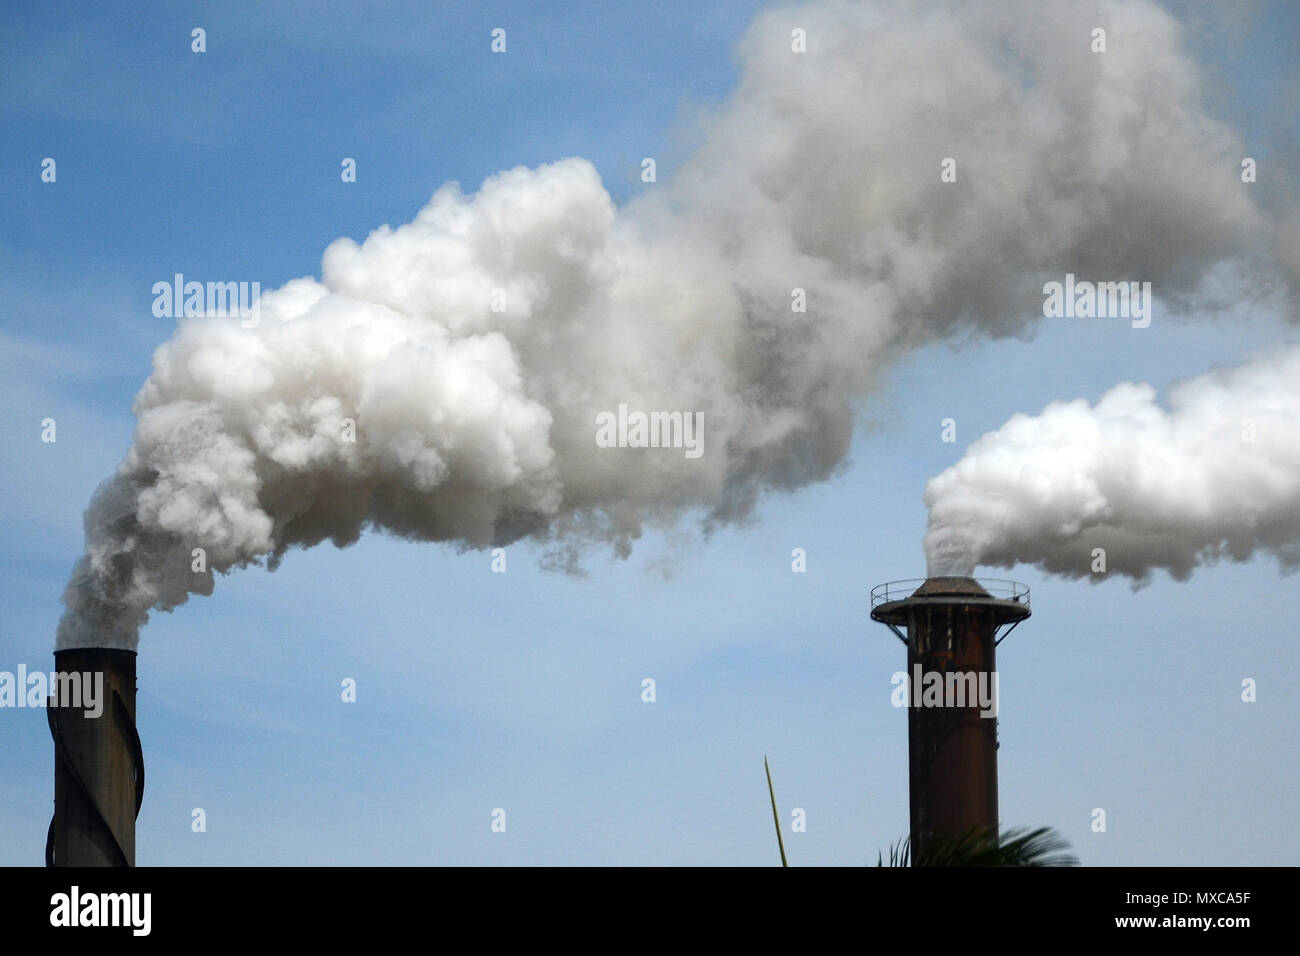 emission of toxic gasses into the atmosphere - Stock Image